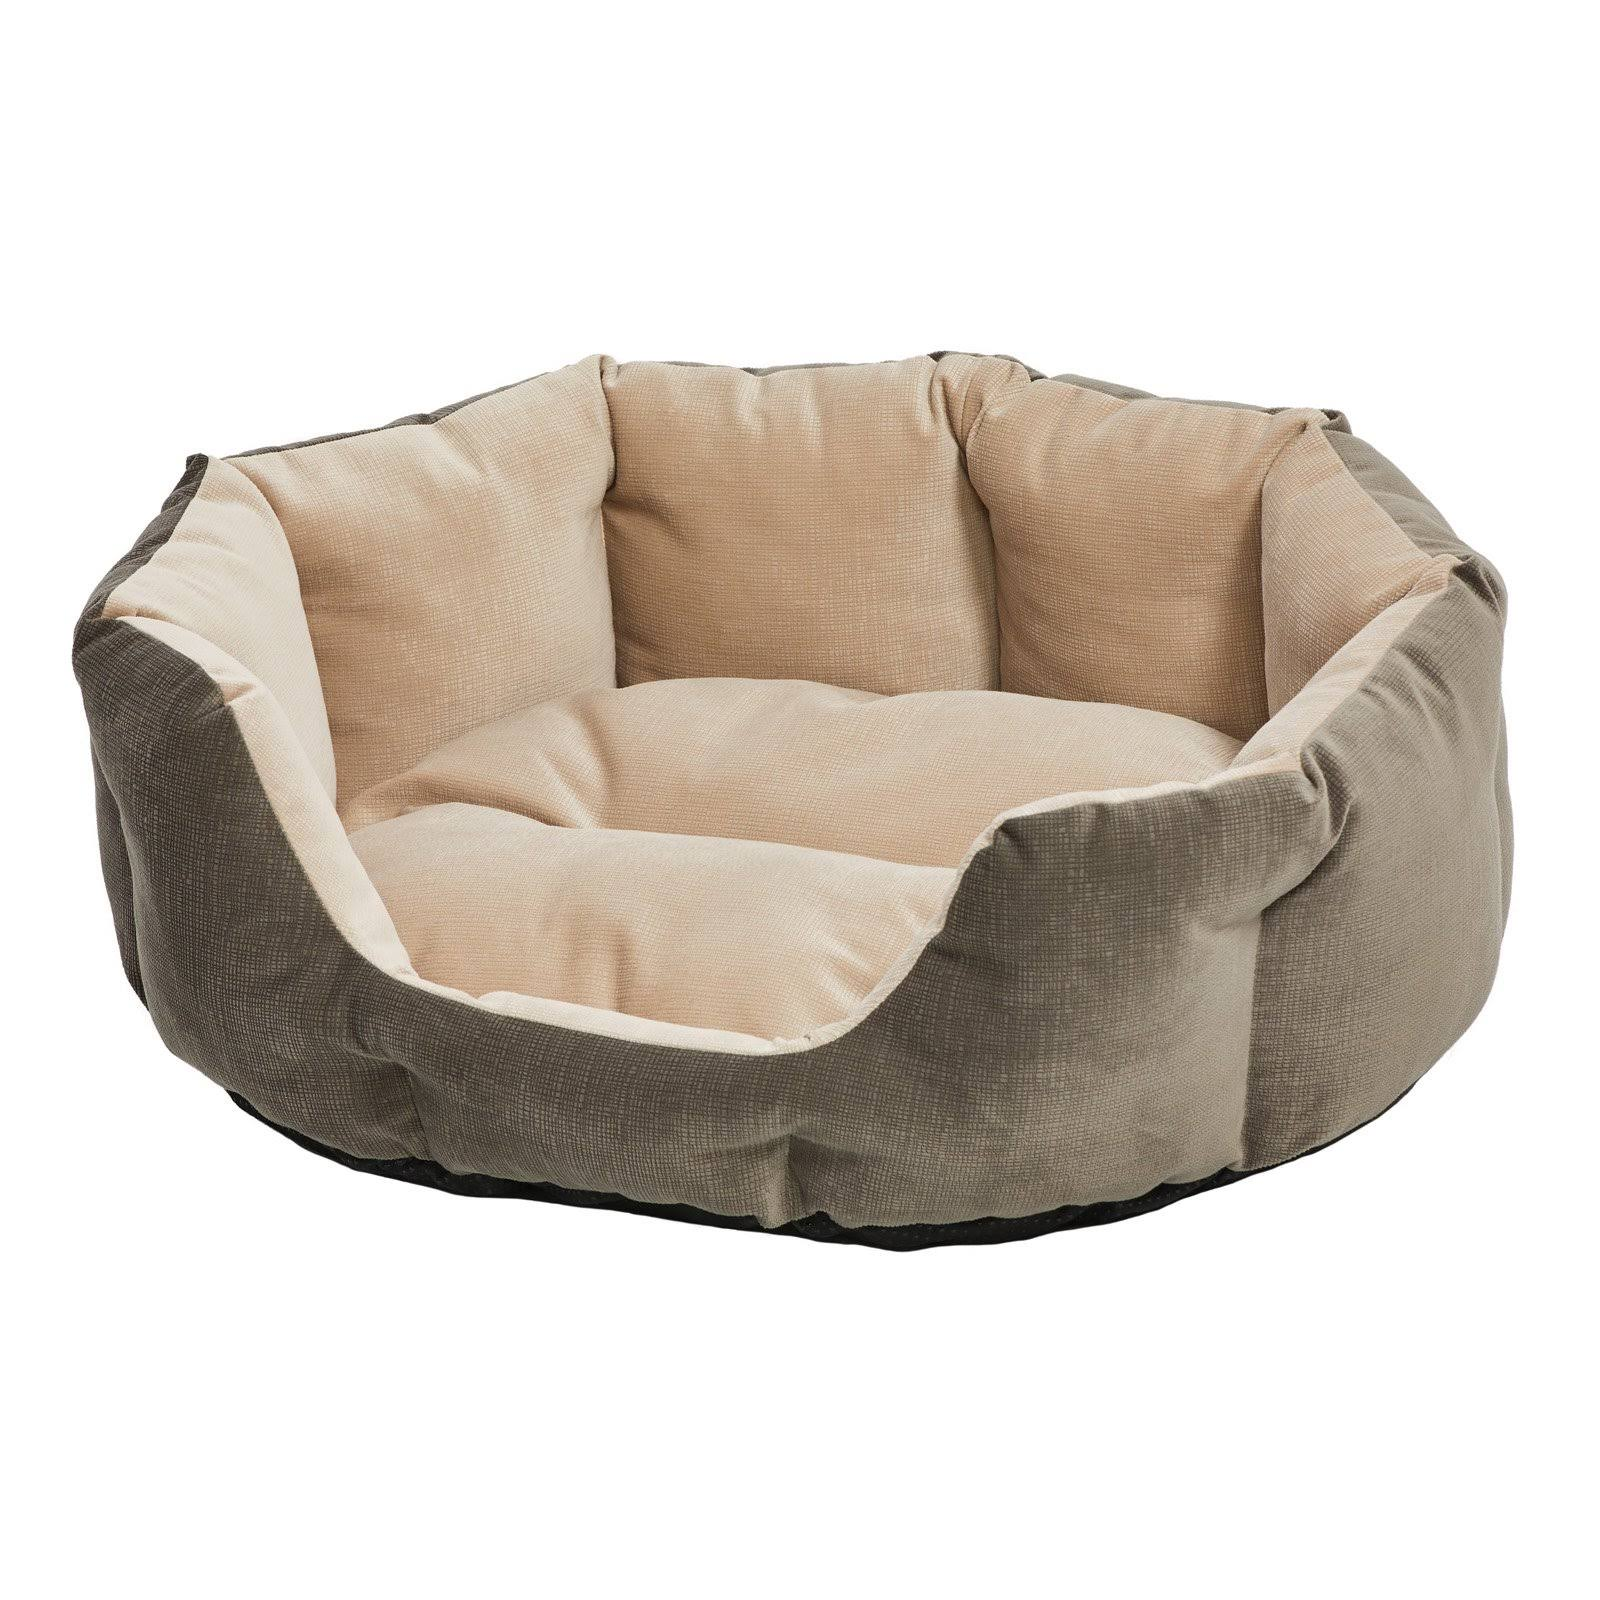 Midwest Homes Deluxe Tulip Nesting Pet Bed - Gray/Tan, Small